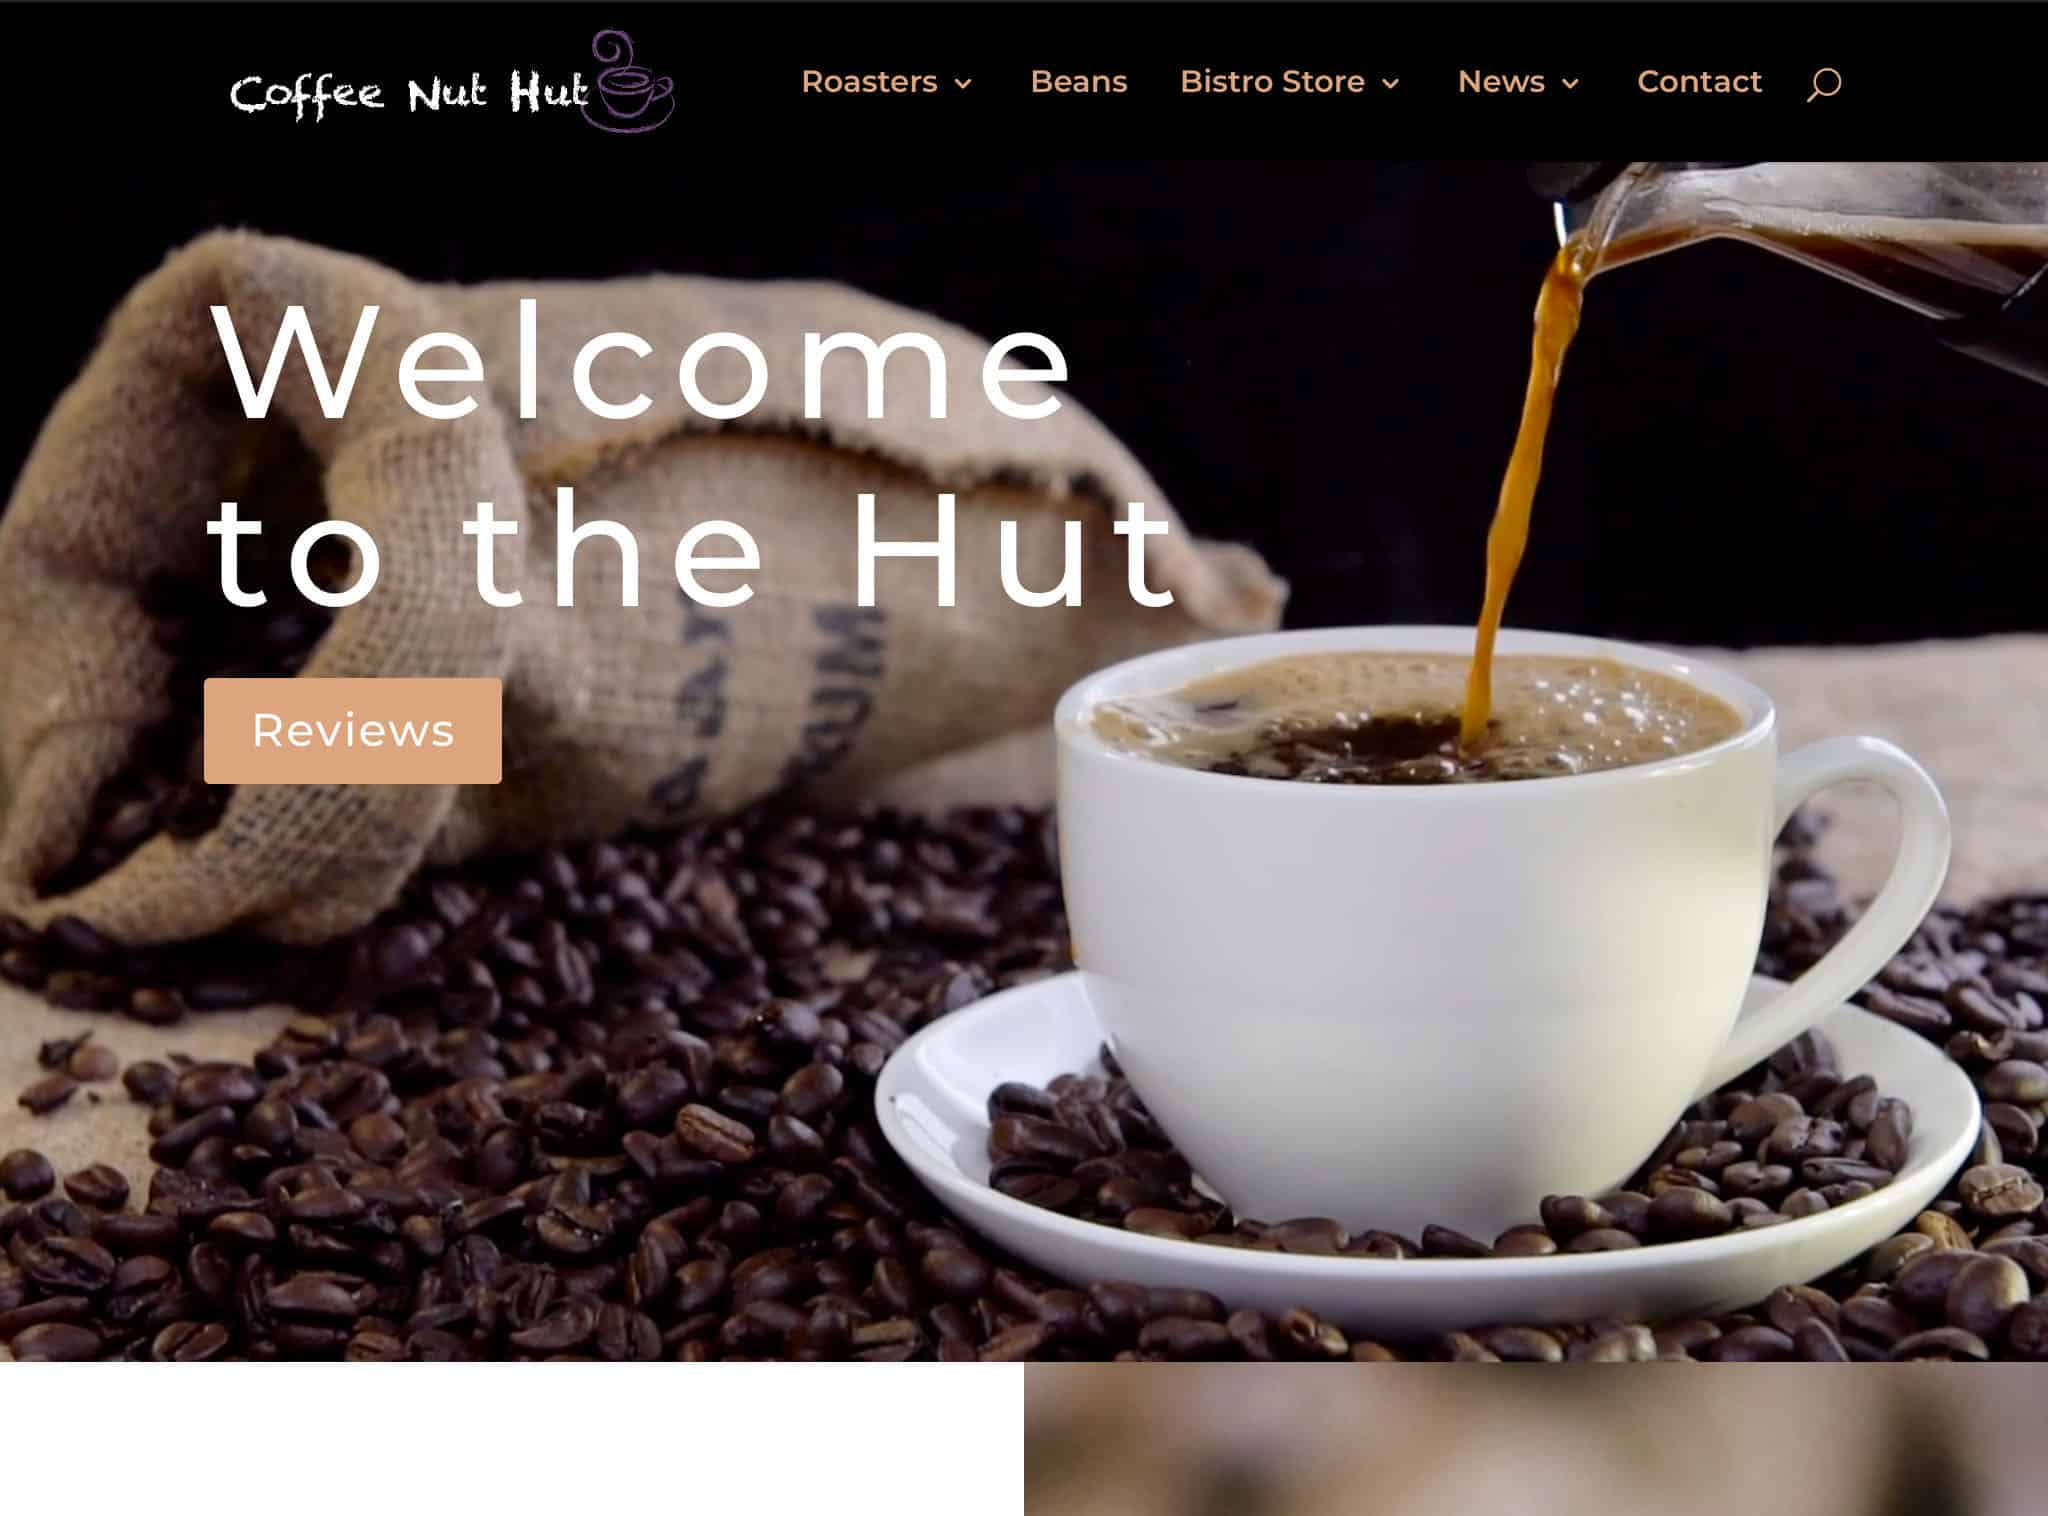 CoffeeNutHut.com Pro Website